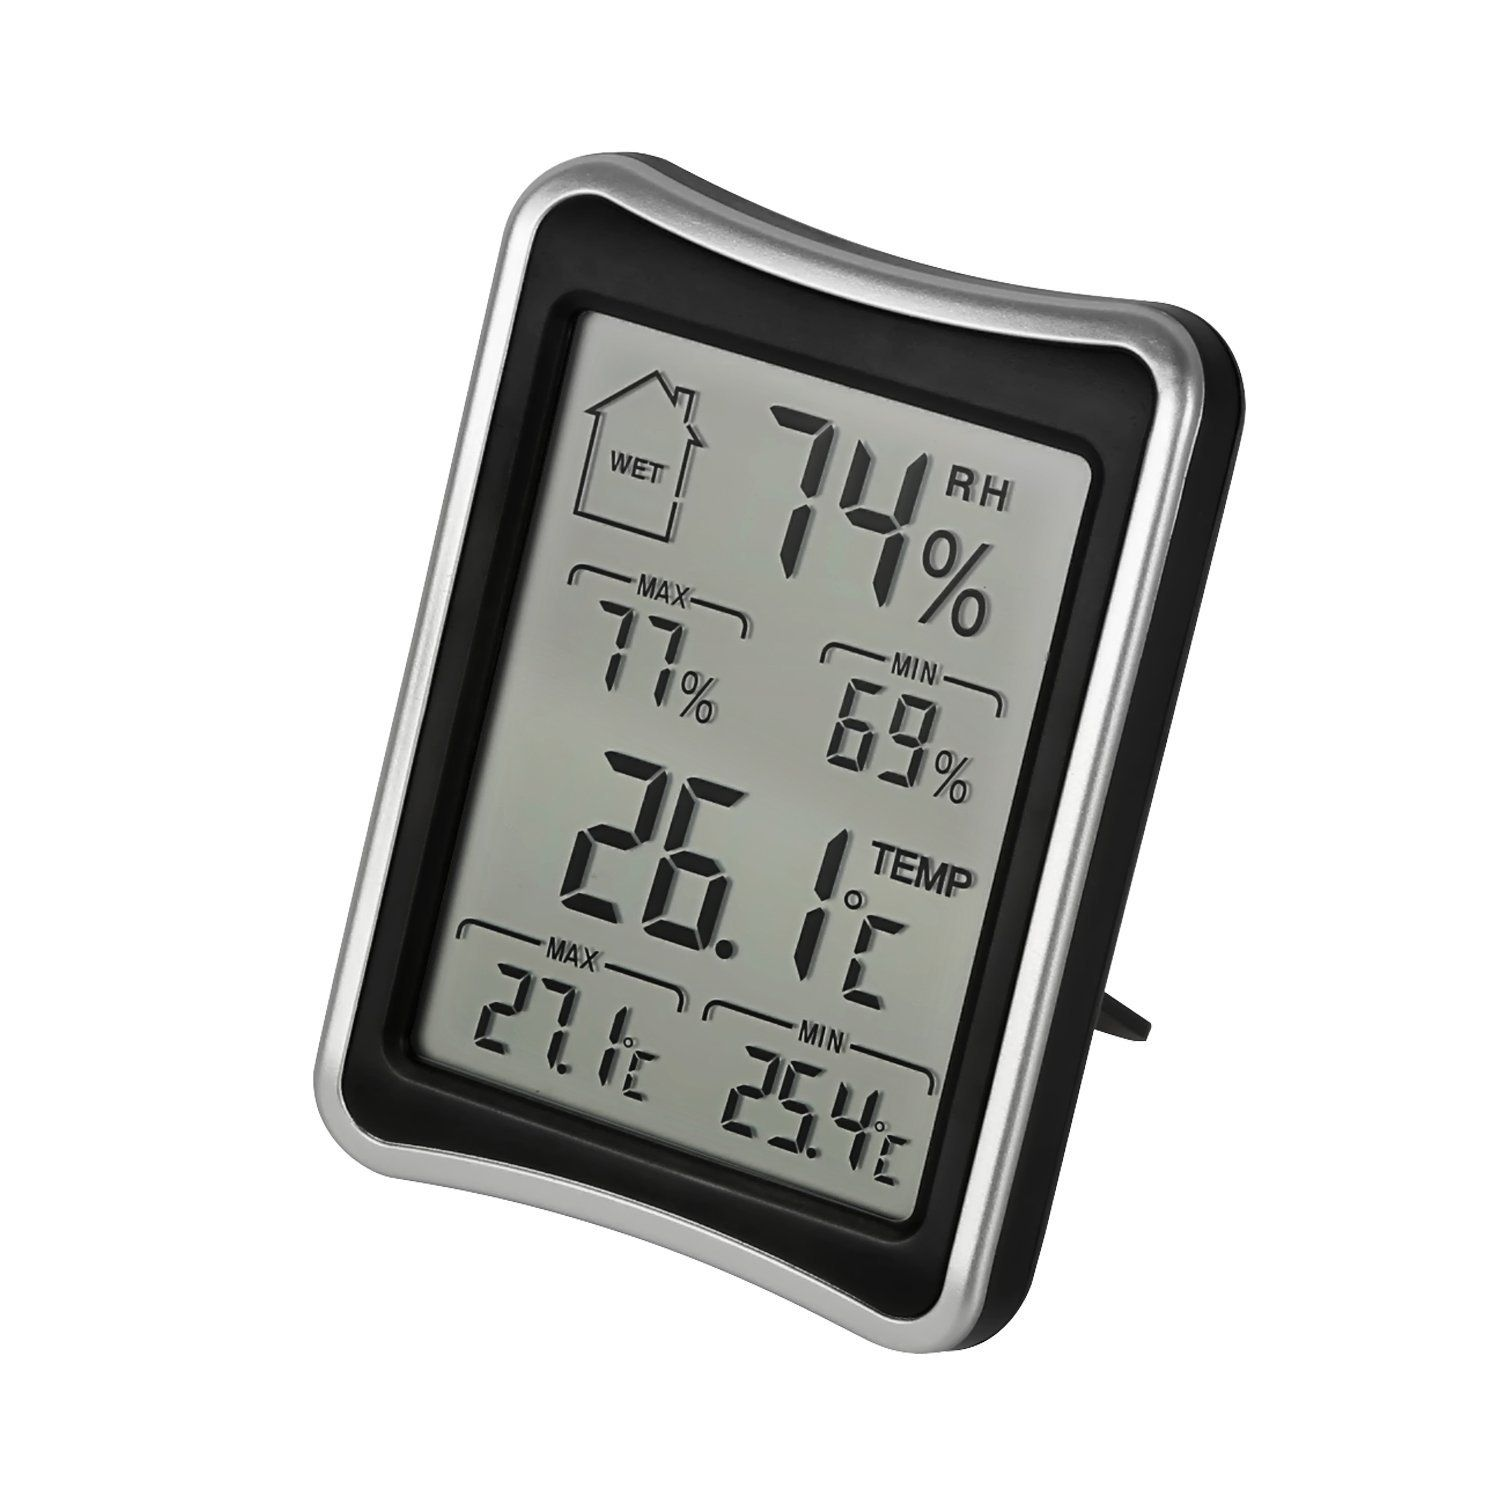 Honesteast Digital Hygrometer Thermometer Indoor Humidity Monitor With Temperature Gauge Meter You Can